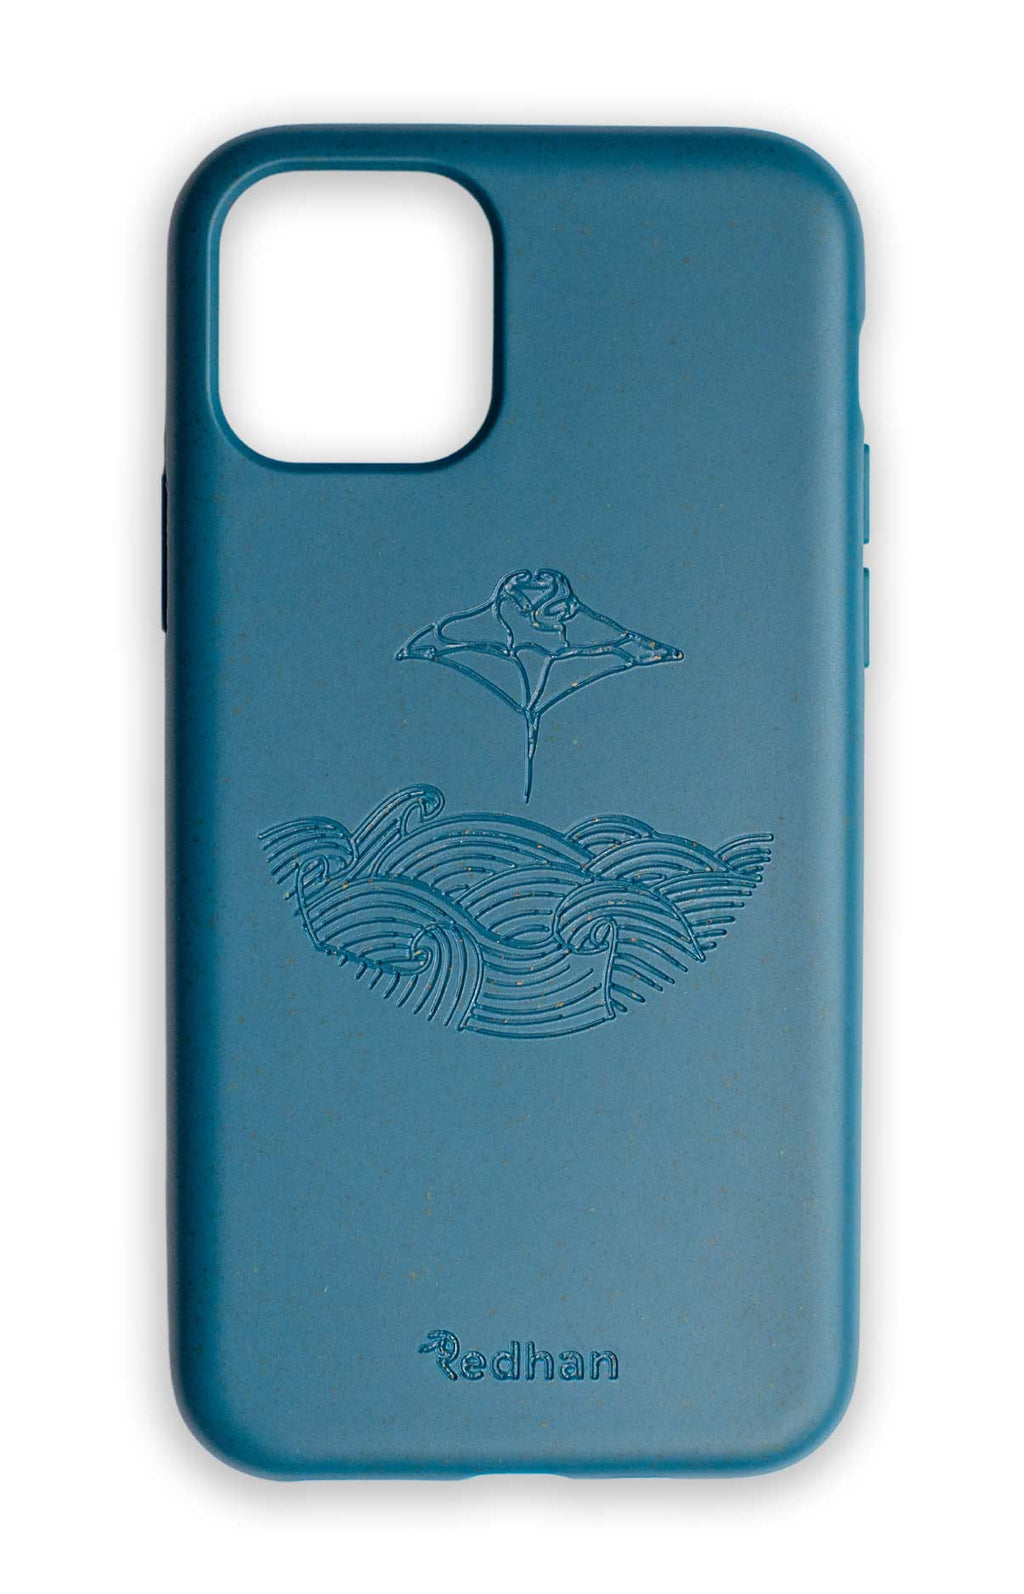 Manta Ray en azul navy - iPhone 11